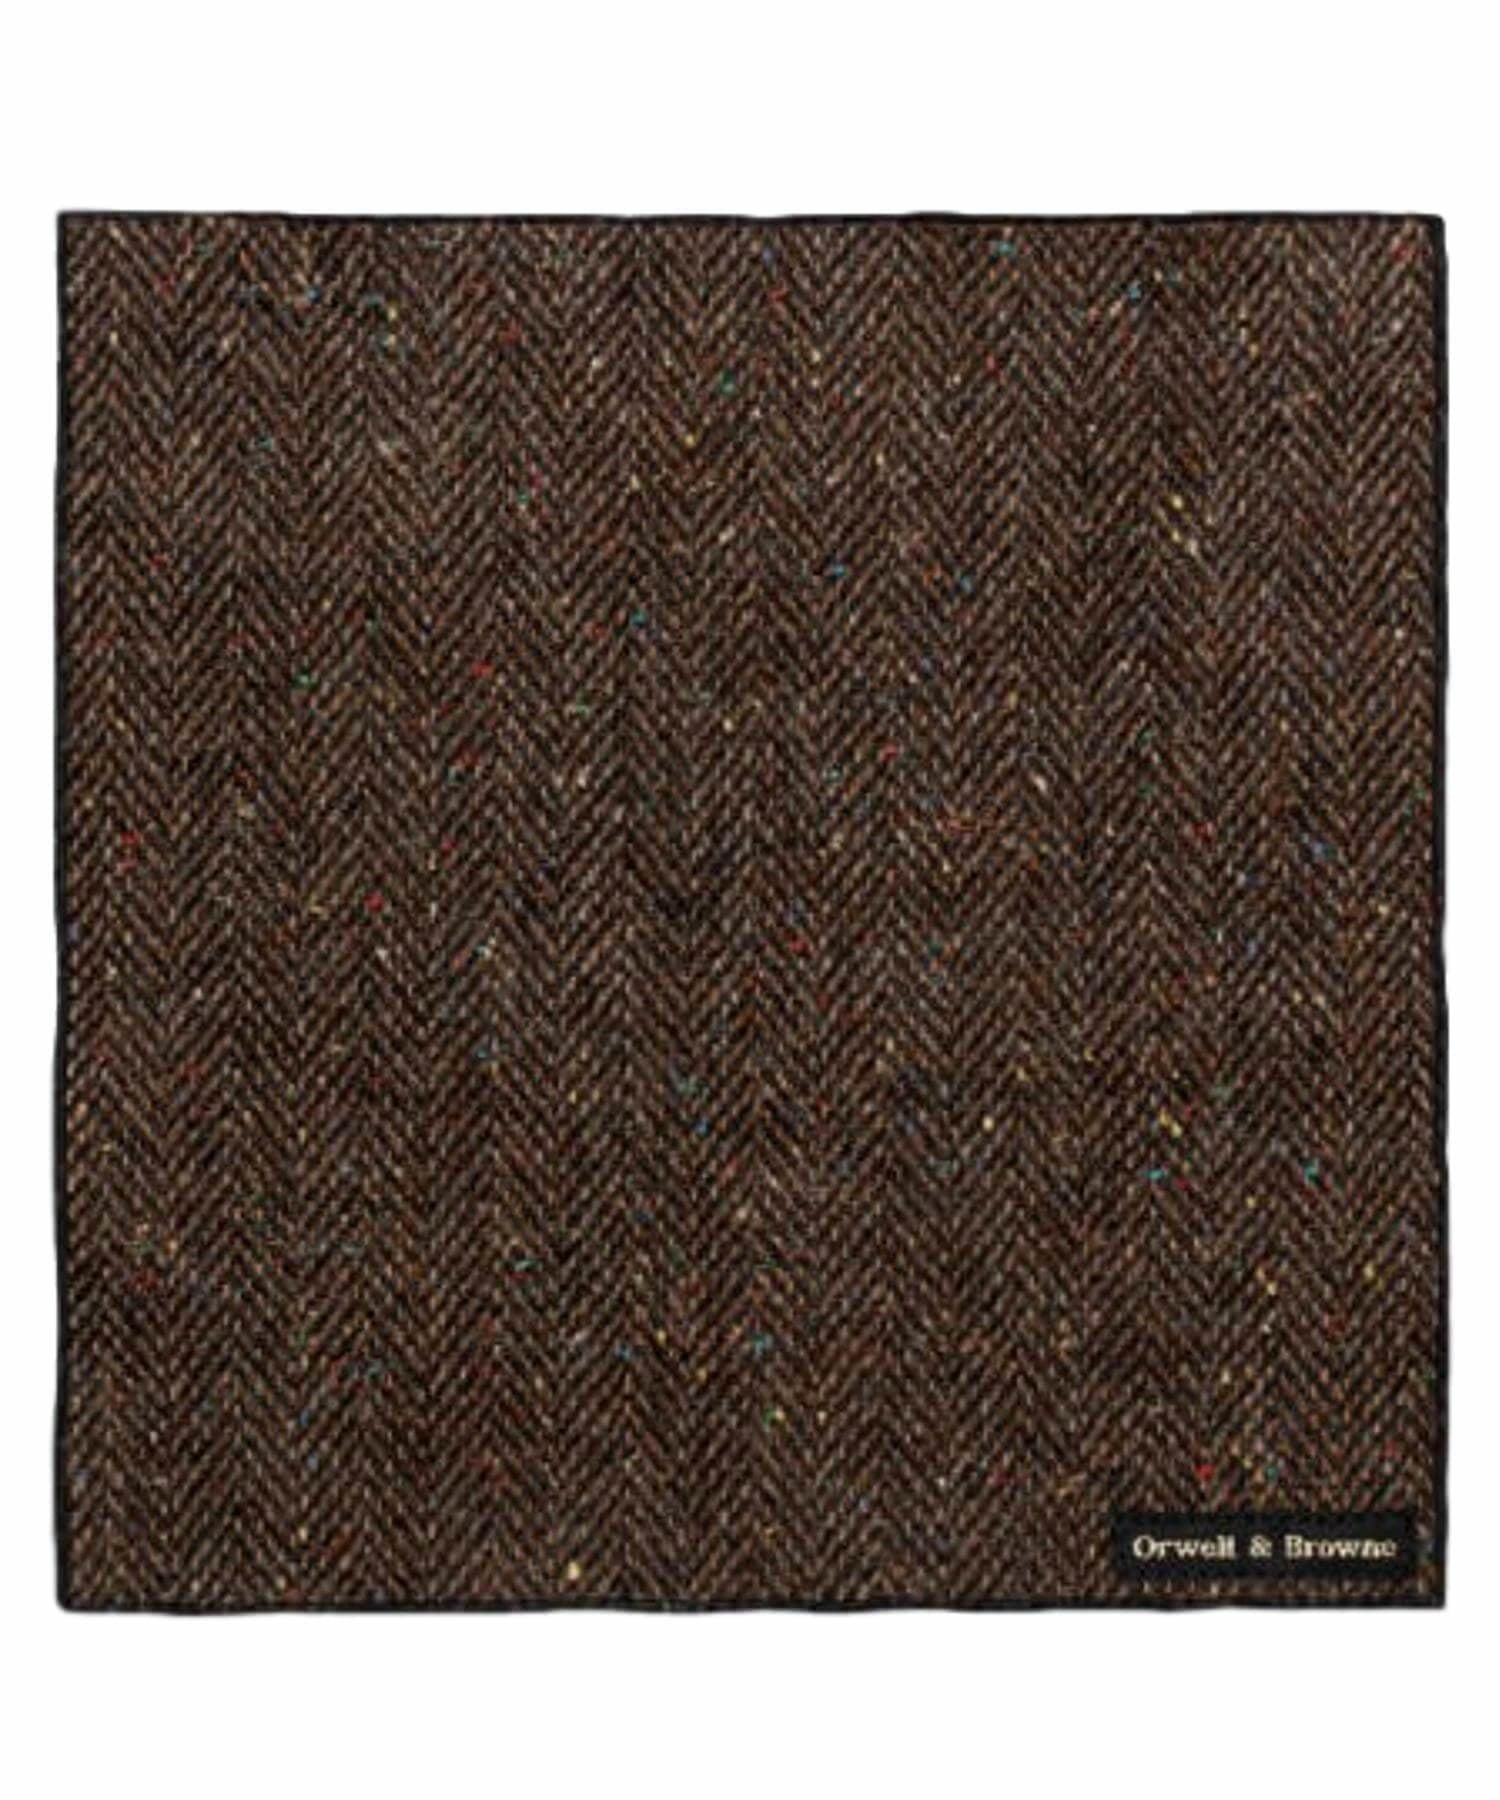 Donegal Tweed Pocket Square - Freckled Sod - [Orwell & Browne] - Mens Accessories - Irish Gifts